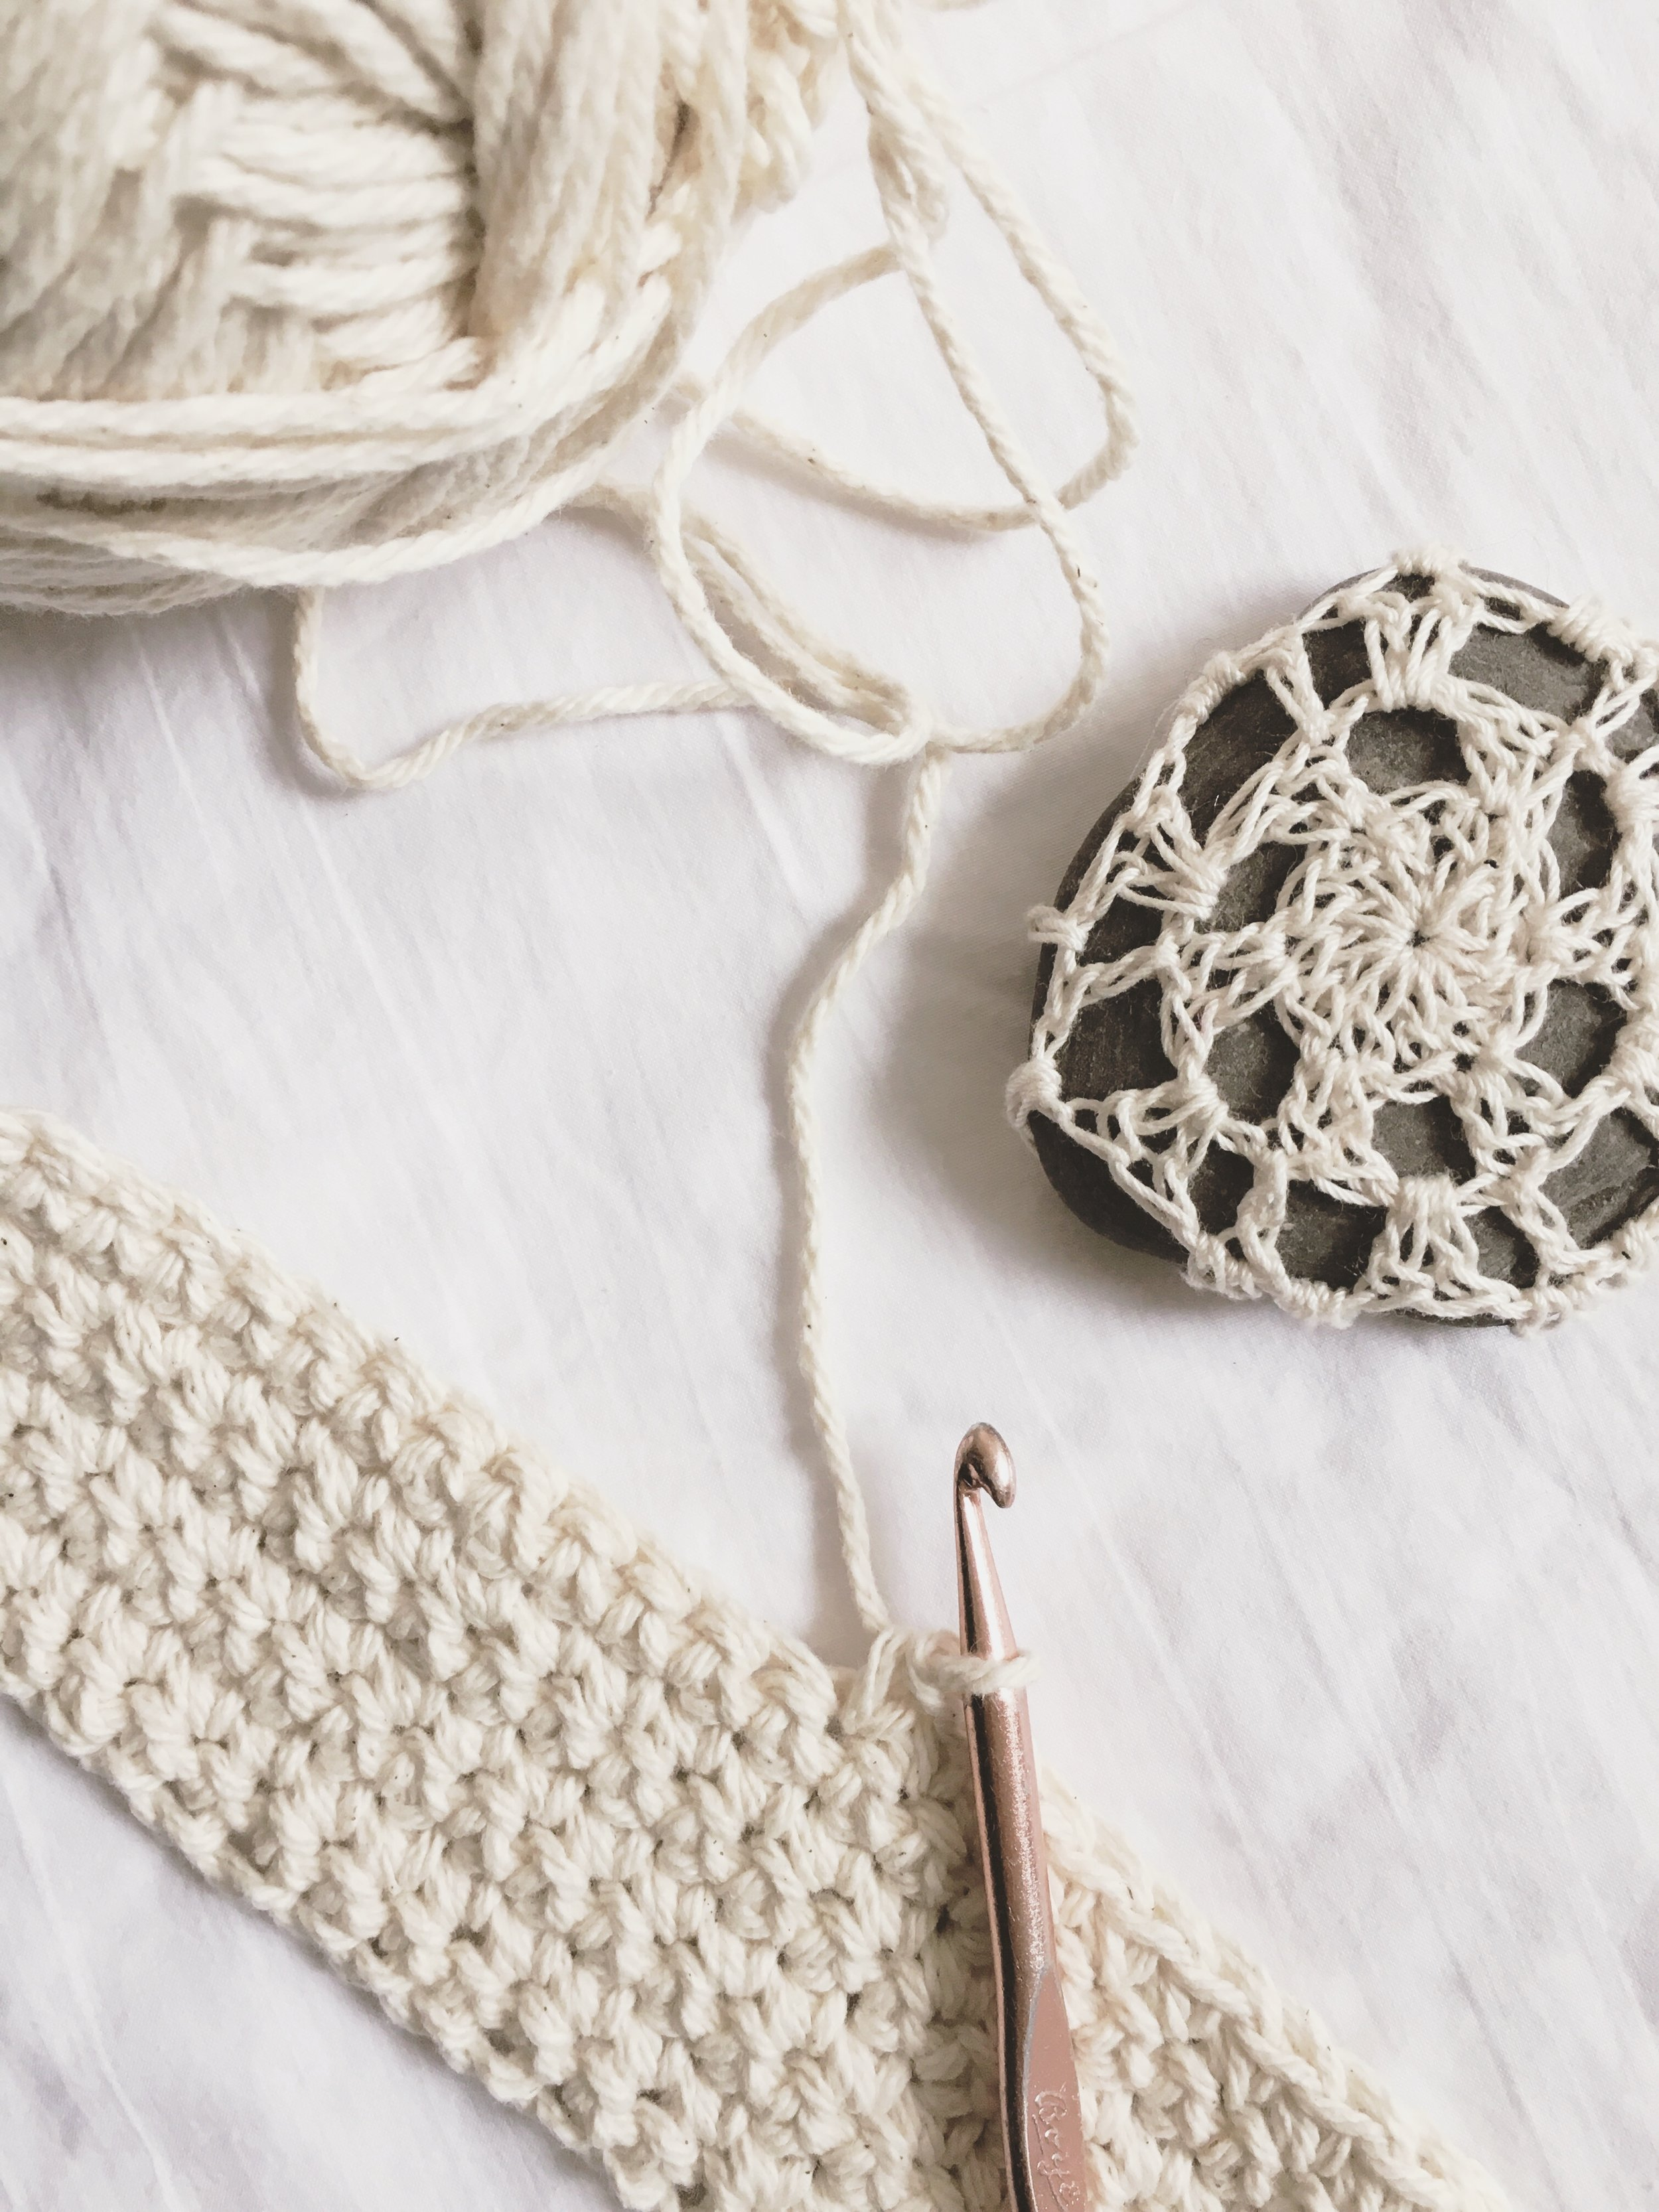 How to Single Crochet! Lessons by Emily from Blue Corduroy